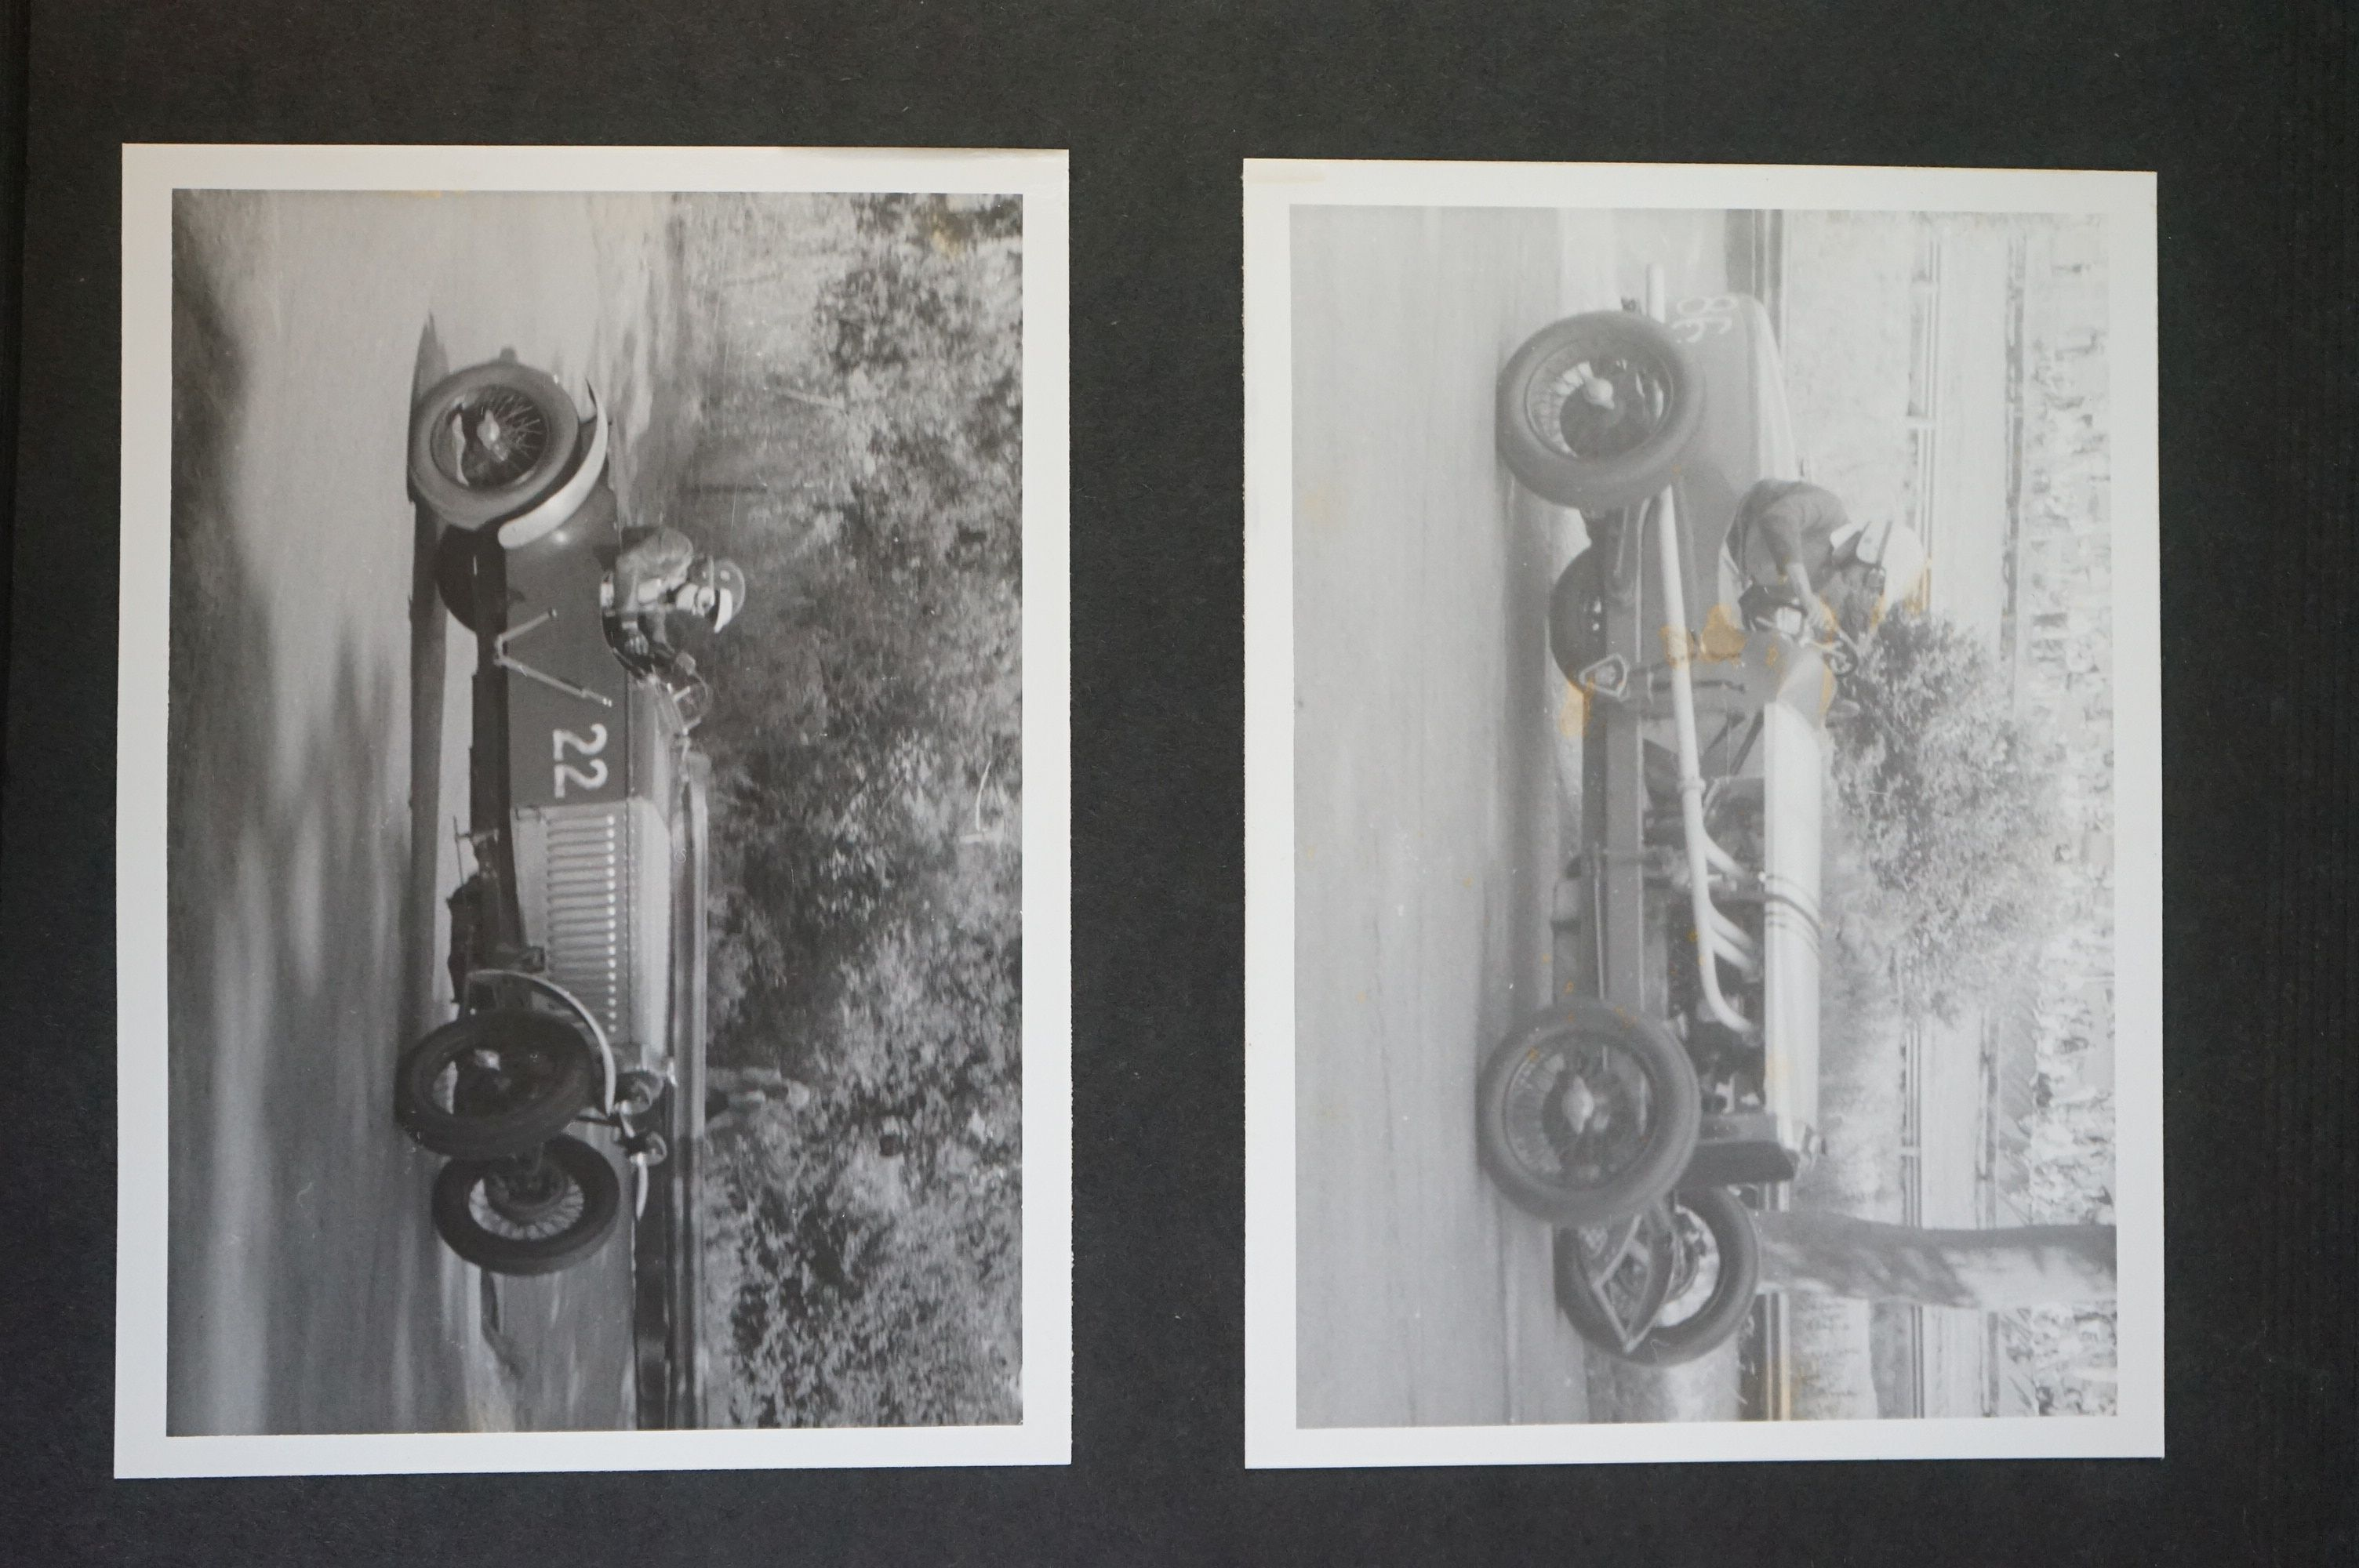 A vintage photograph album with vintage black and white photos of motor racing cars. - Image 2 of 5